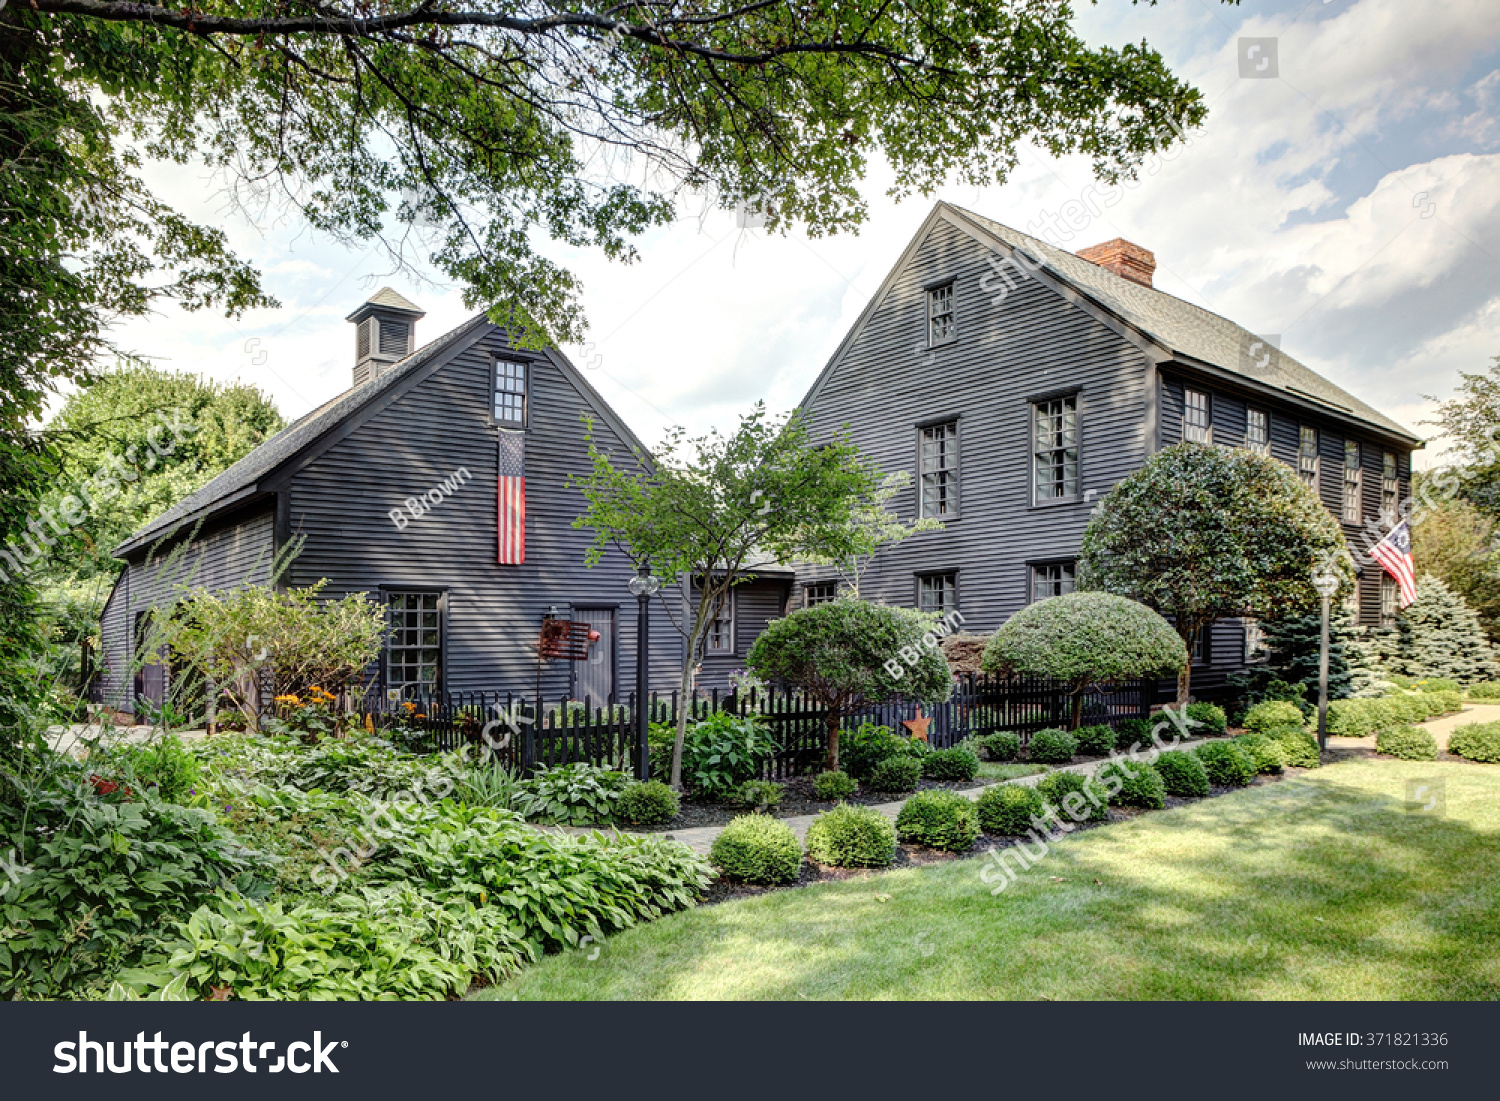 Image porch landscaping primitive colonial style stock for Reproduction homes